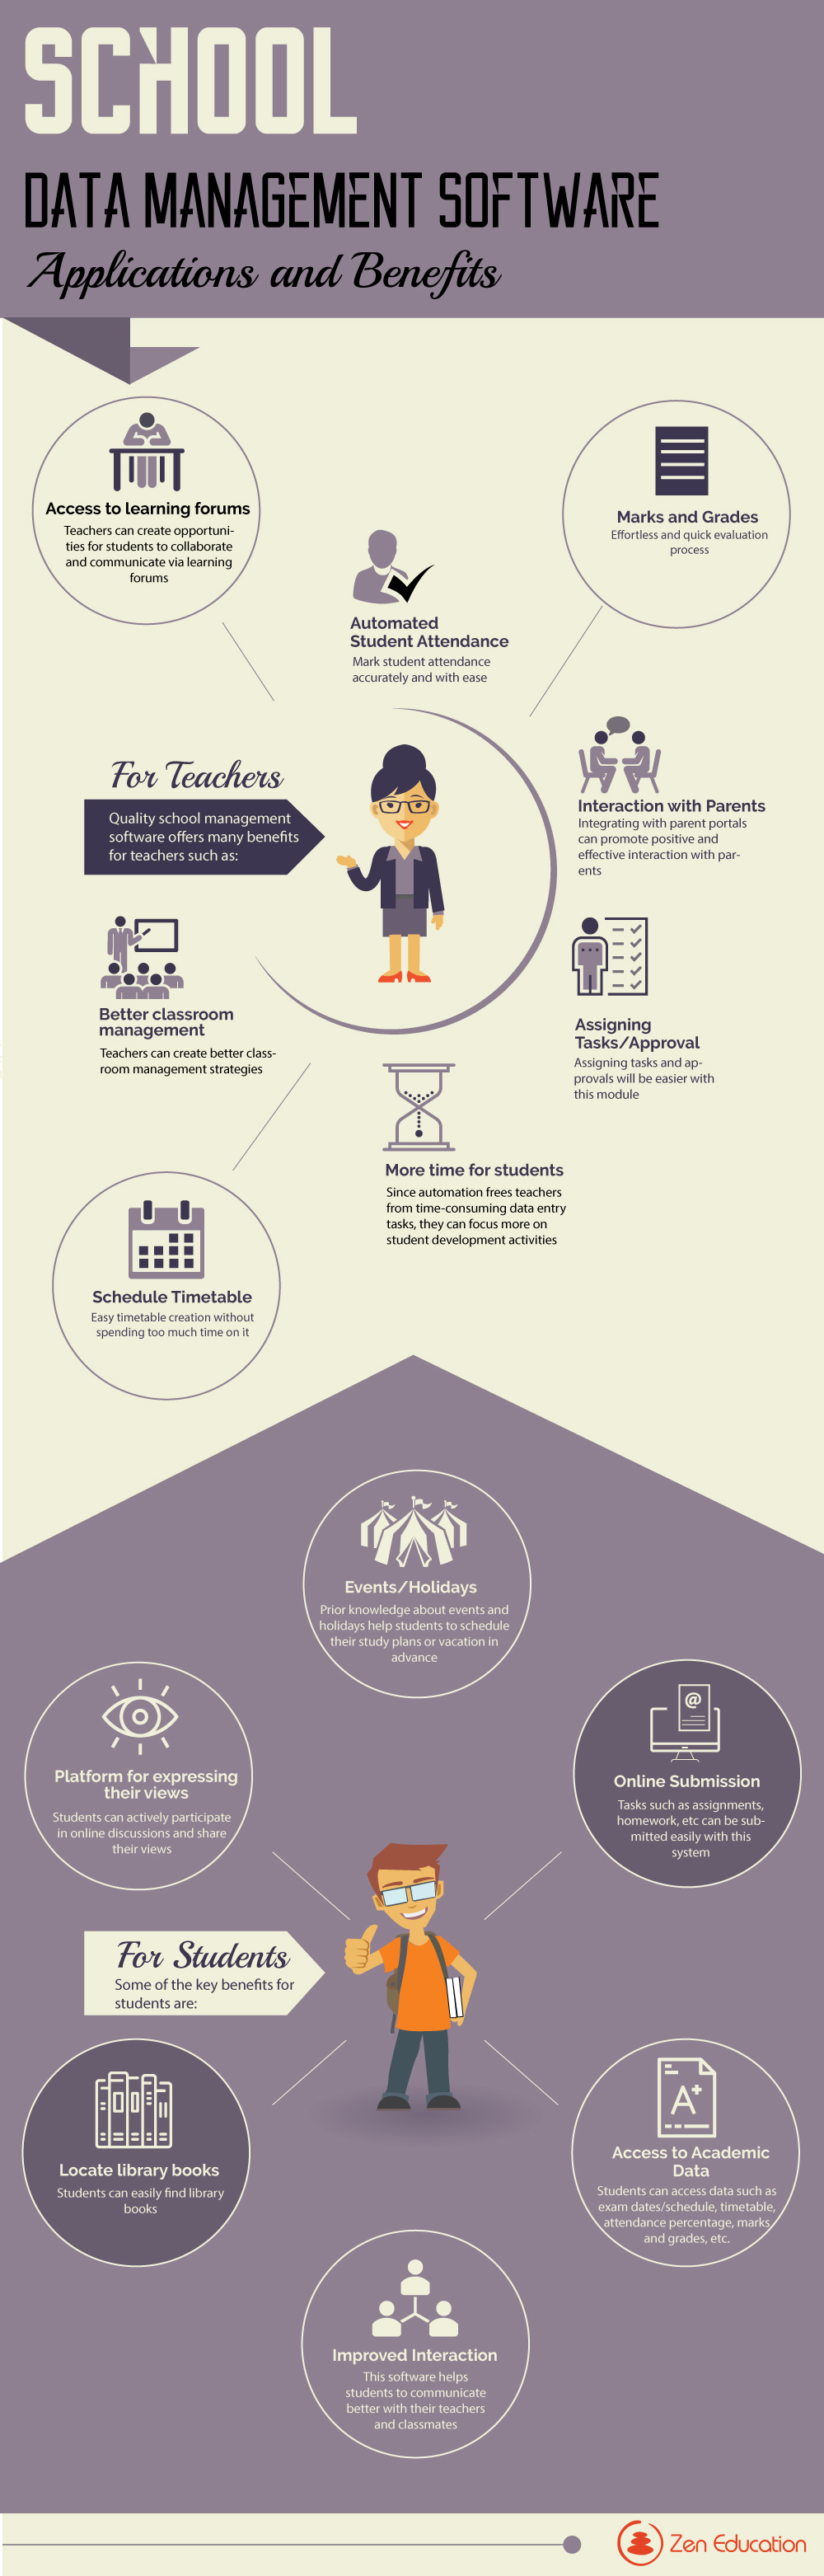 school-data-management-software-applications-and-benefits-infographic-plaza